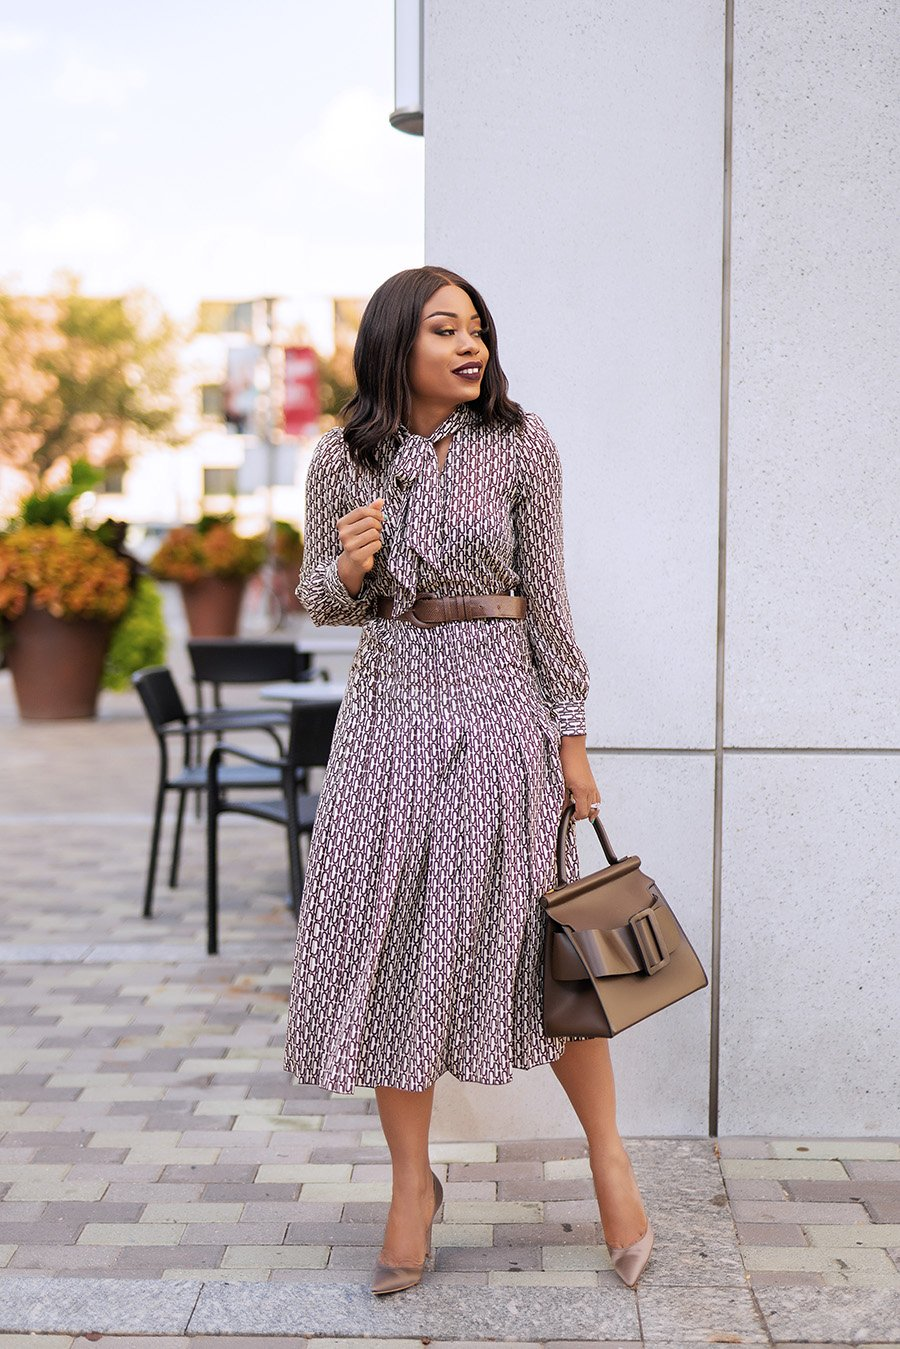 Stella-Adewunmi-of-jadore-fashion-shares-how-to-wear-pleated-dress-to-work-for-spring